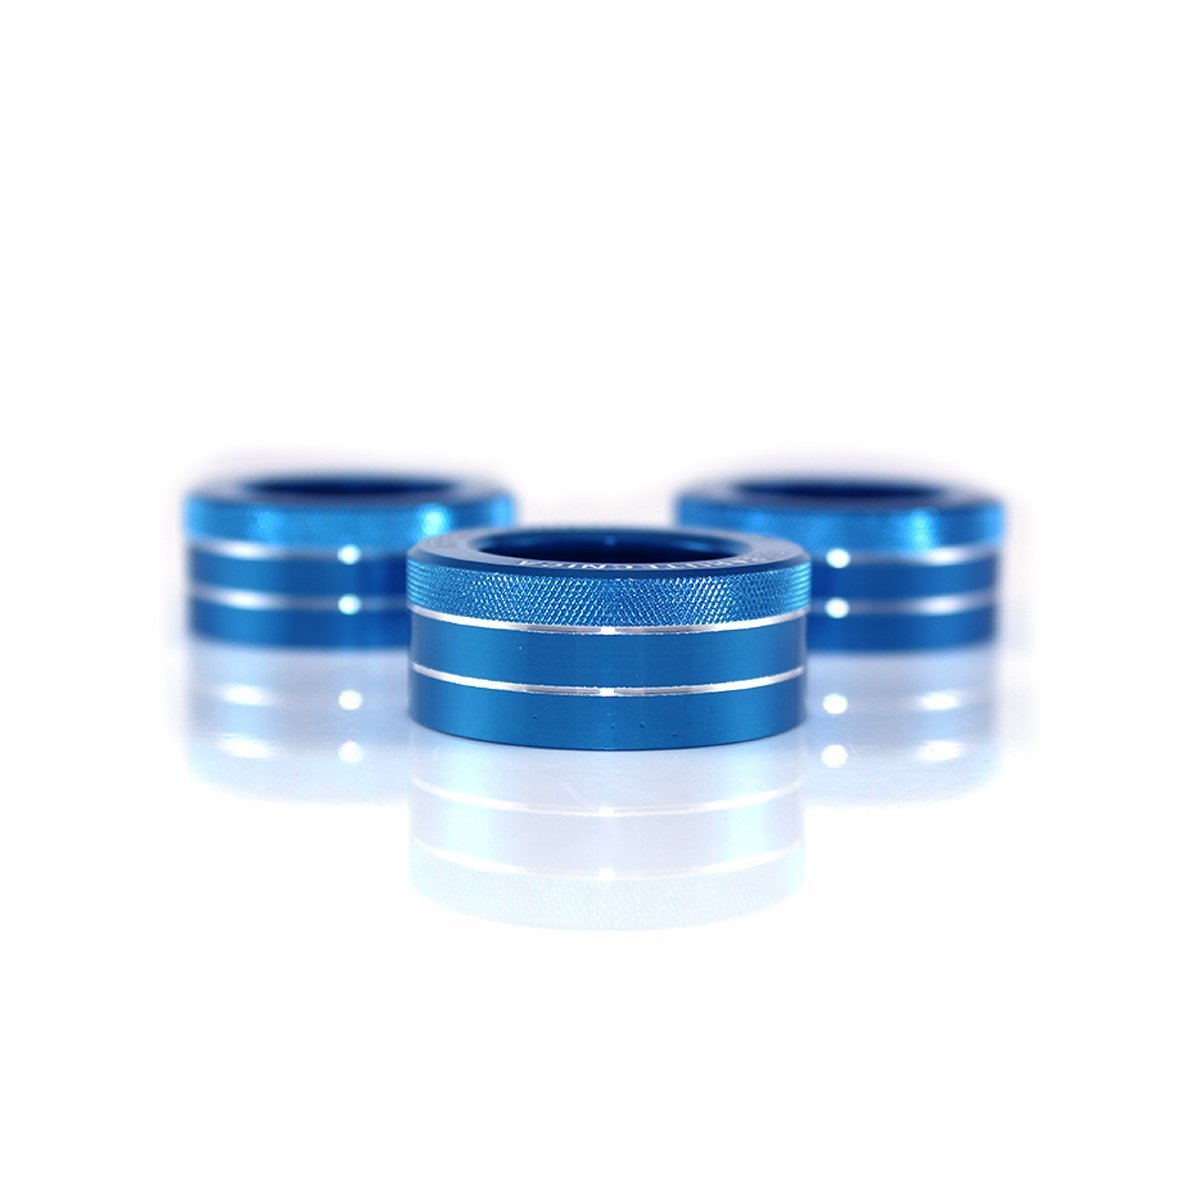 3x 3x AC Knob Control Volume Blue Cover Rings Trim for Subaru BRZ GT86 FT86 FR-S